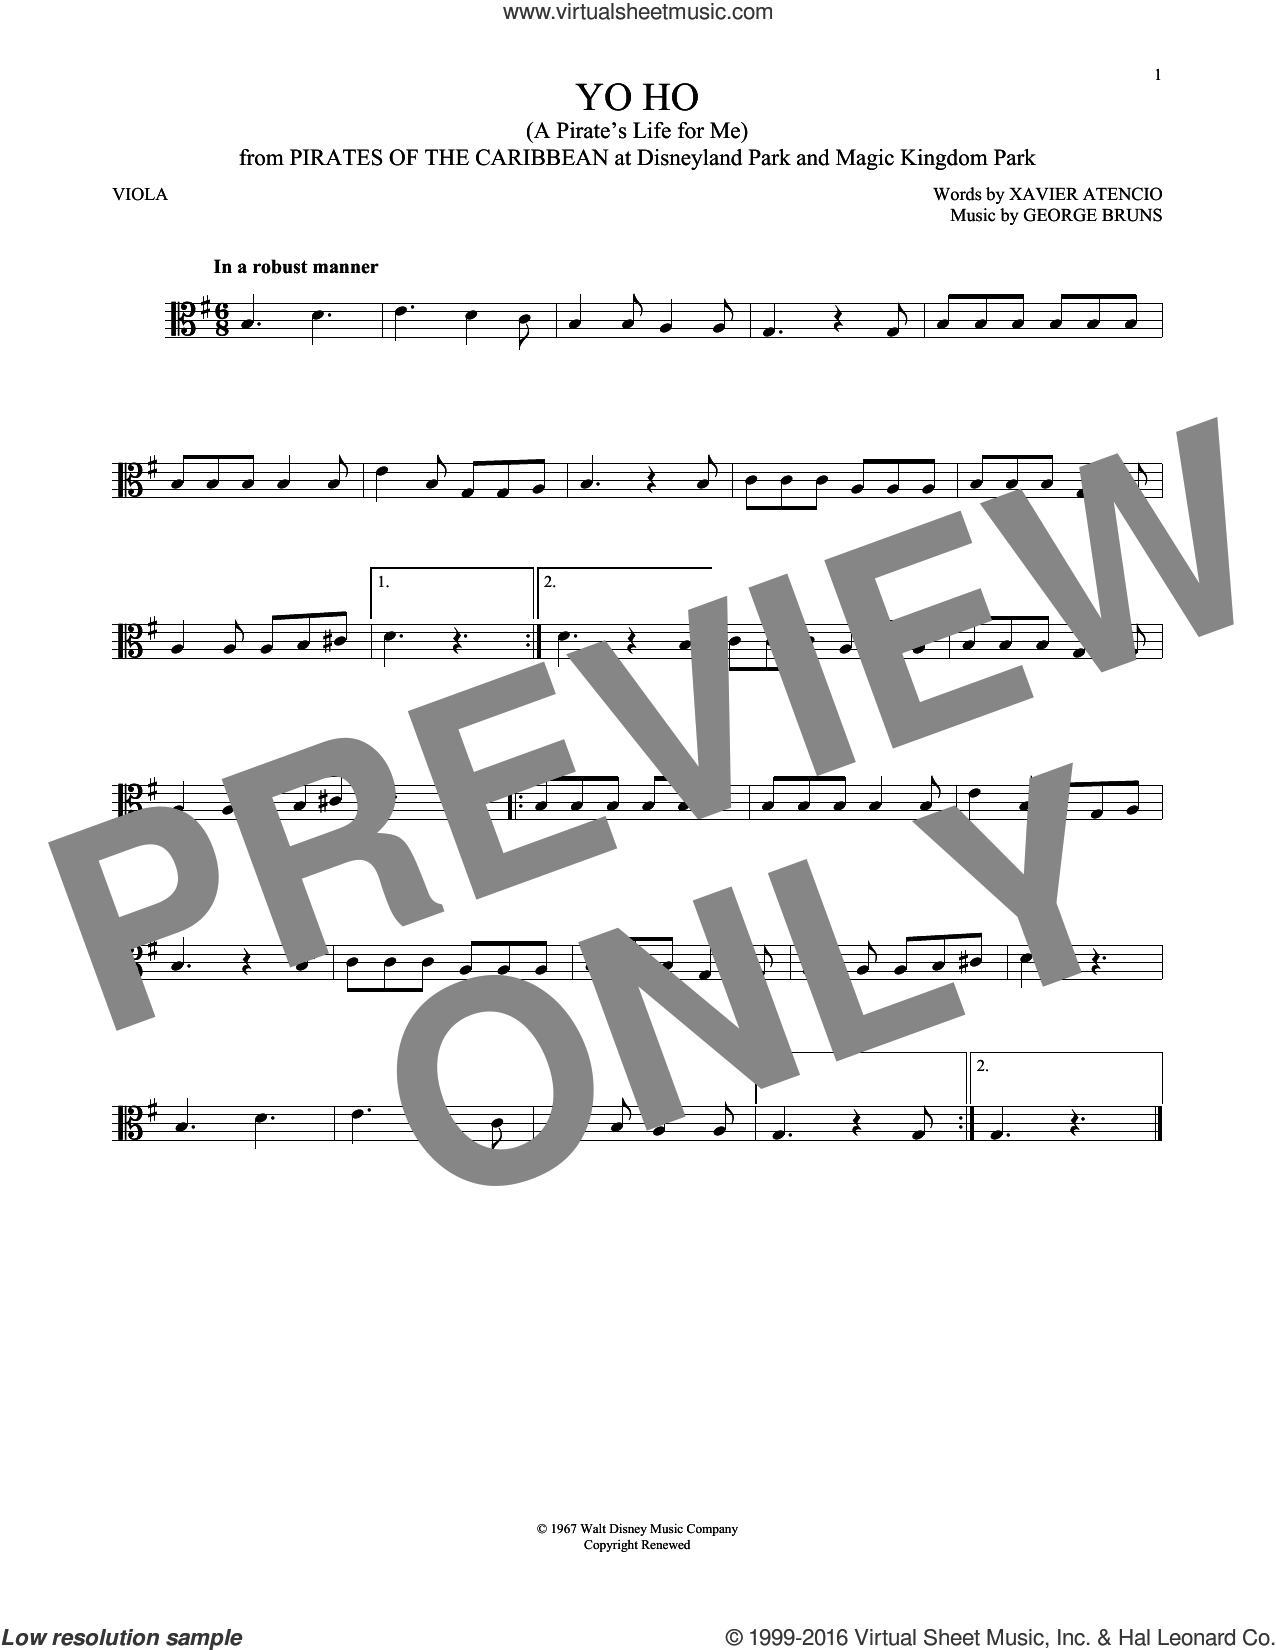 Yo Ho (A Pirate's Life For Me) sheet music for viola solo by George Bruns and Xavier Atencio, intermediate skill level